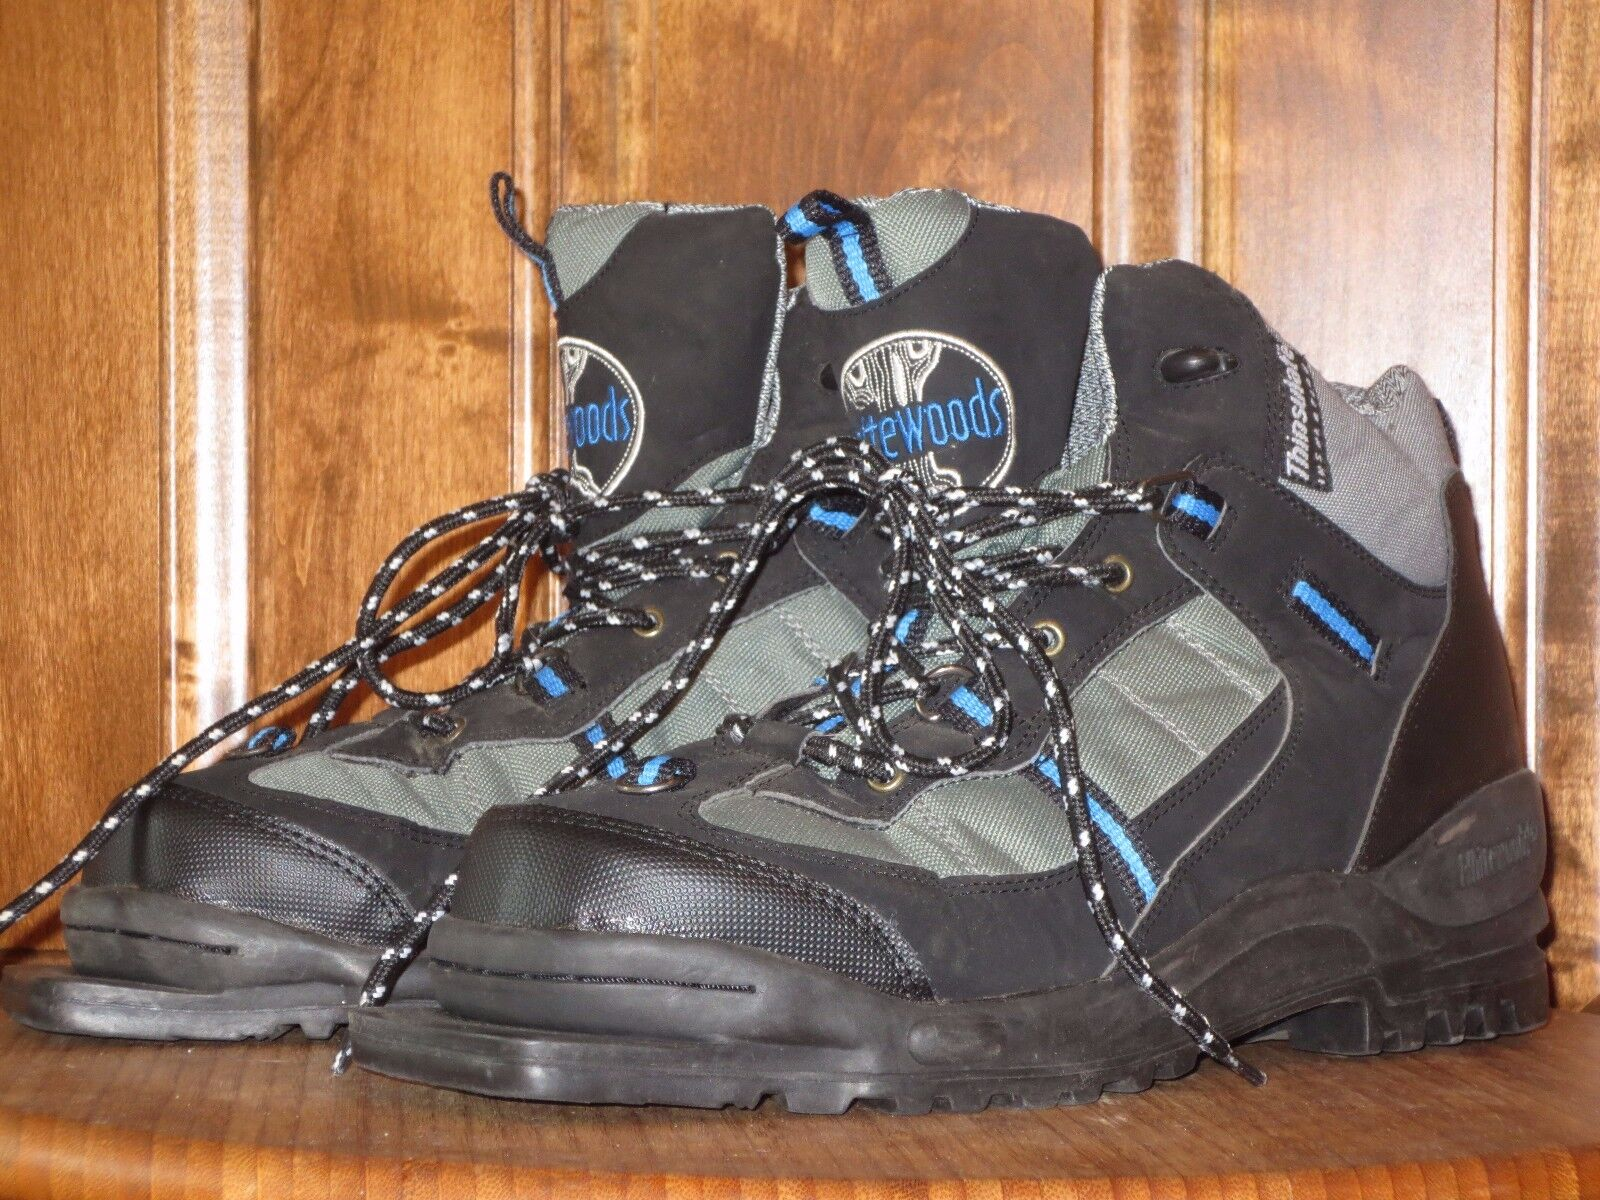 WHITEWOODS CROSS COUNTRY BOOTS SIZE 14, Nordic 3 pin